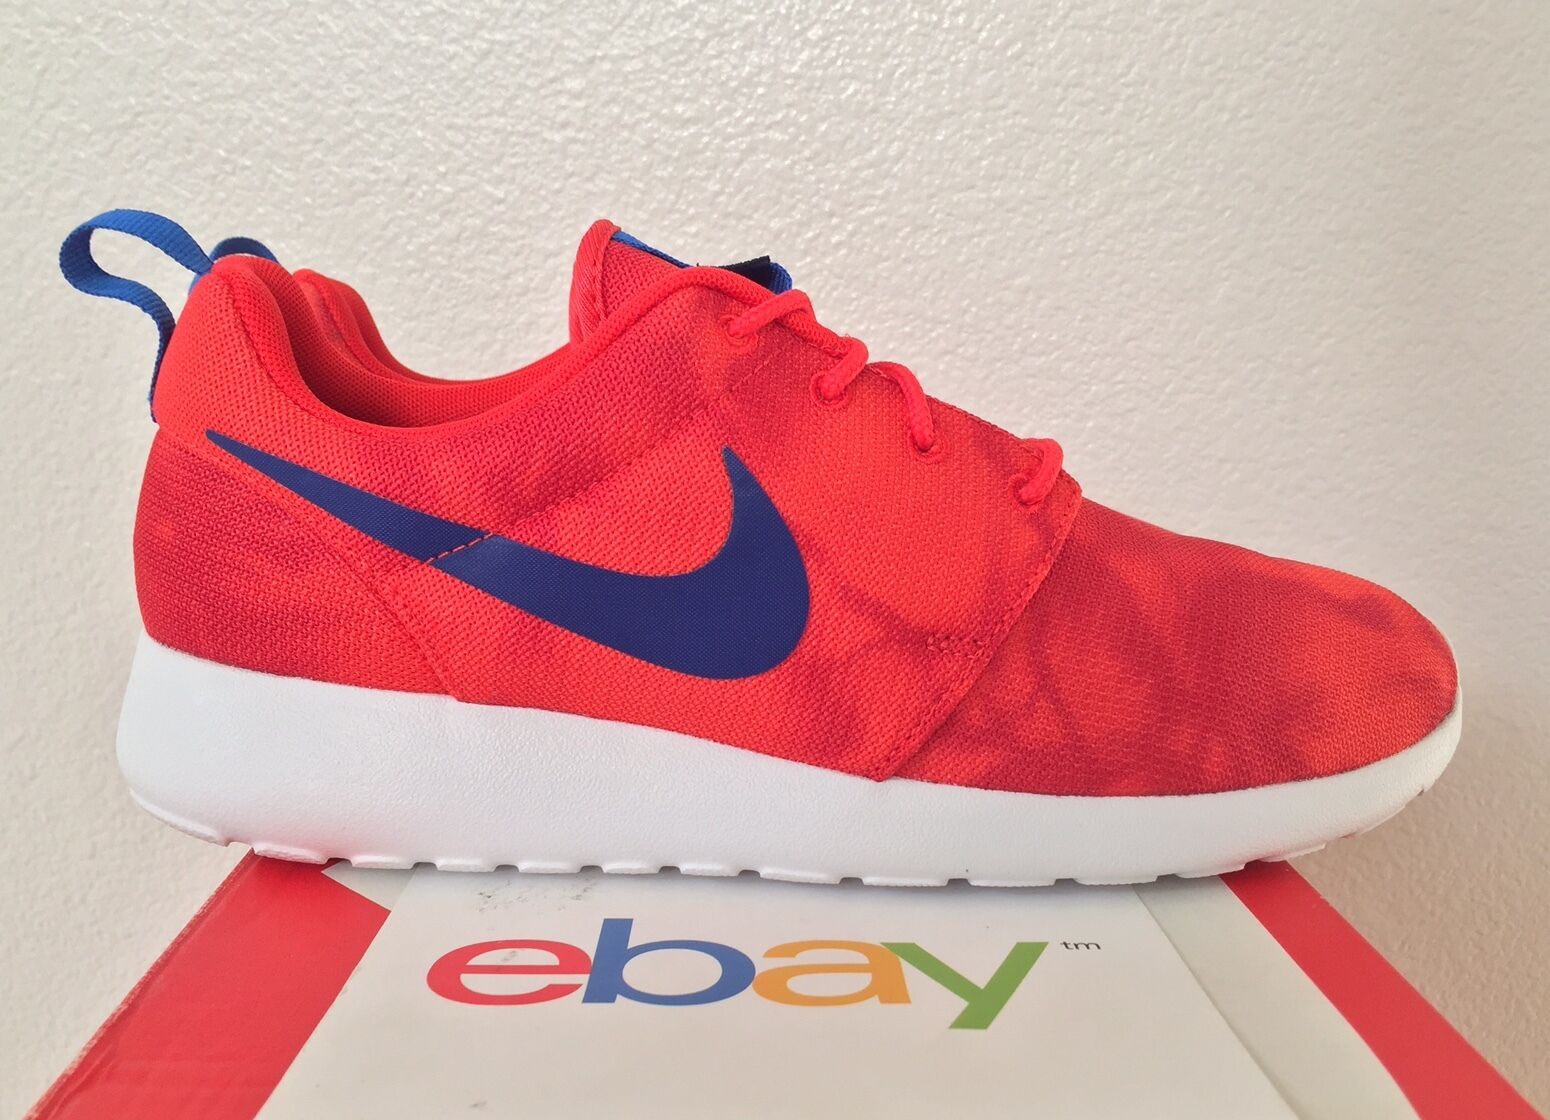 DS Nike Rosherun Print Chilling Red Size 9 royal blue one white new 655206 640